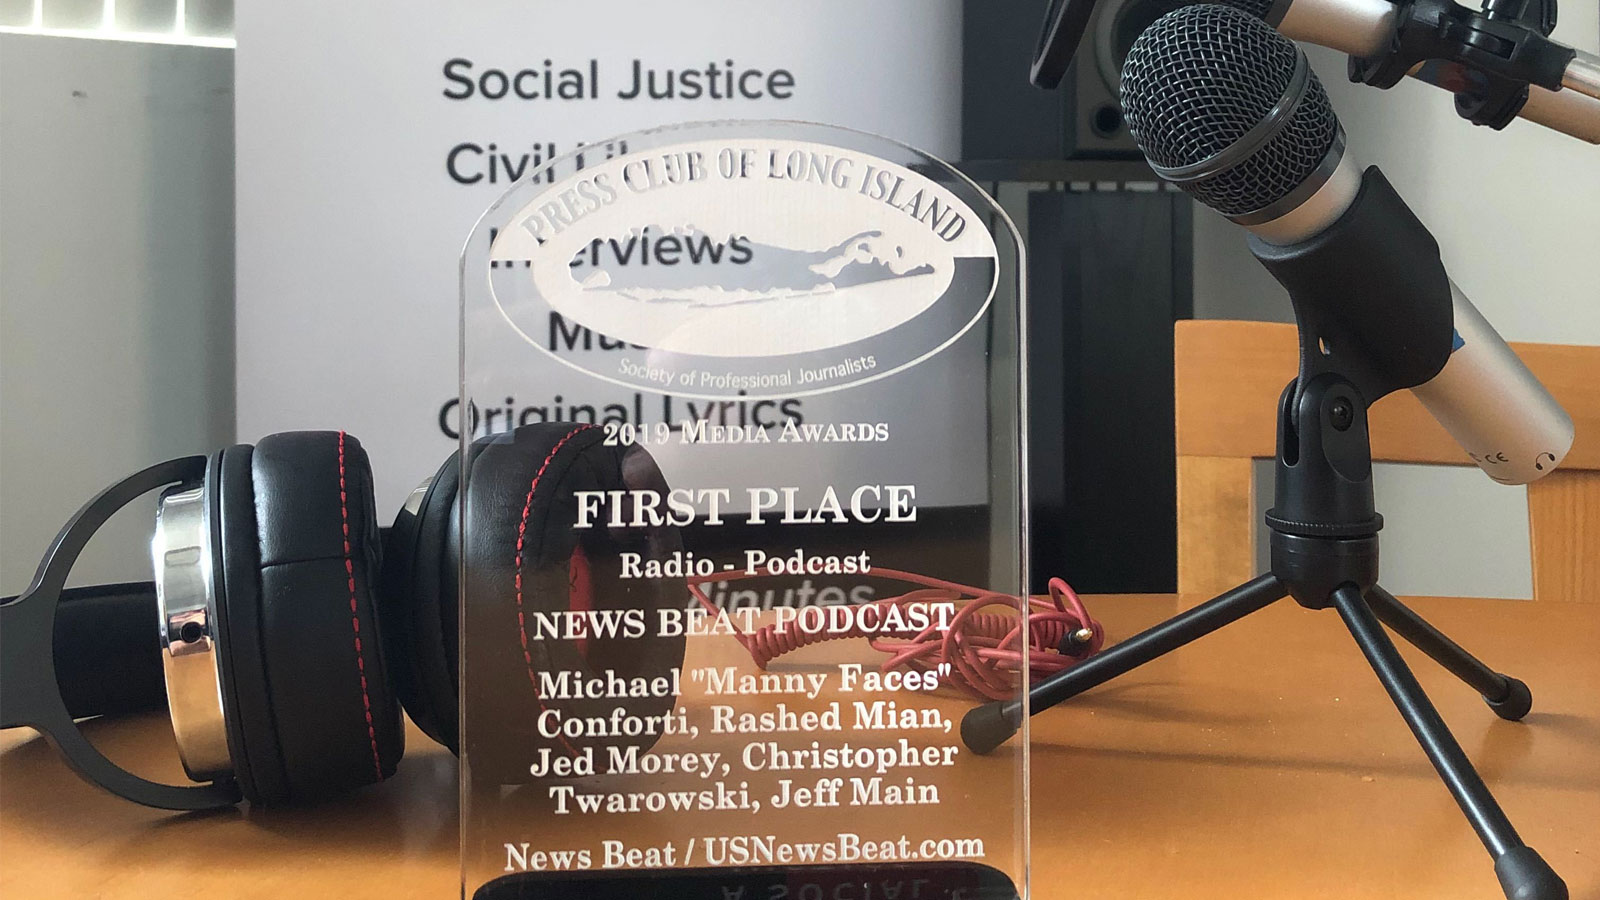 news-beat-podcast-wins-top-honors-at-spj-press-club-of-long-island-media-awards